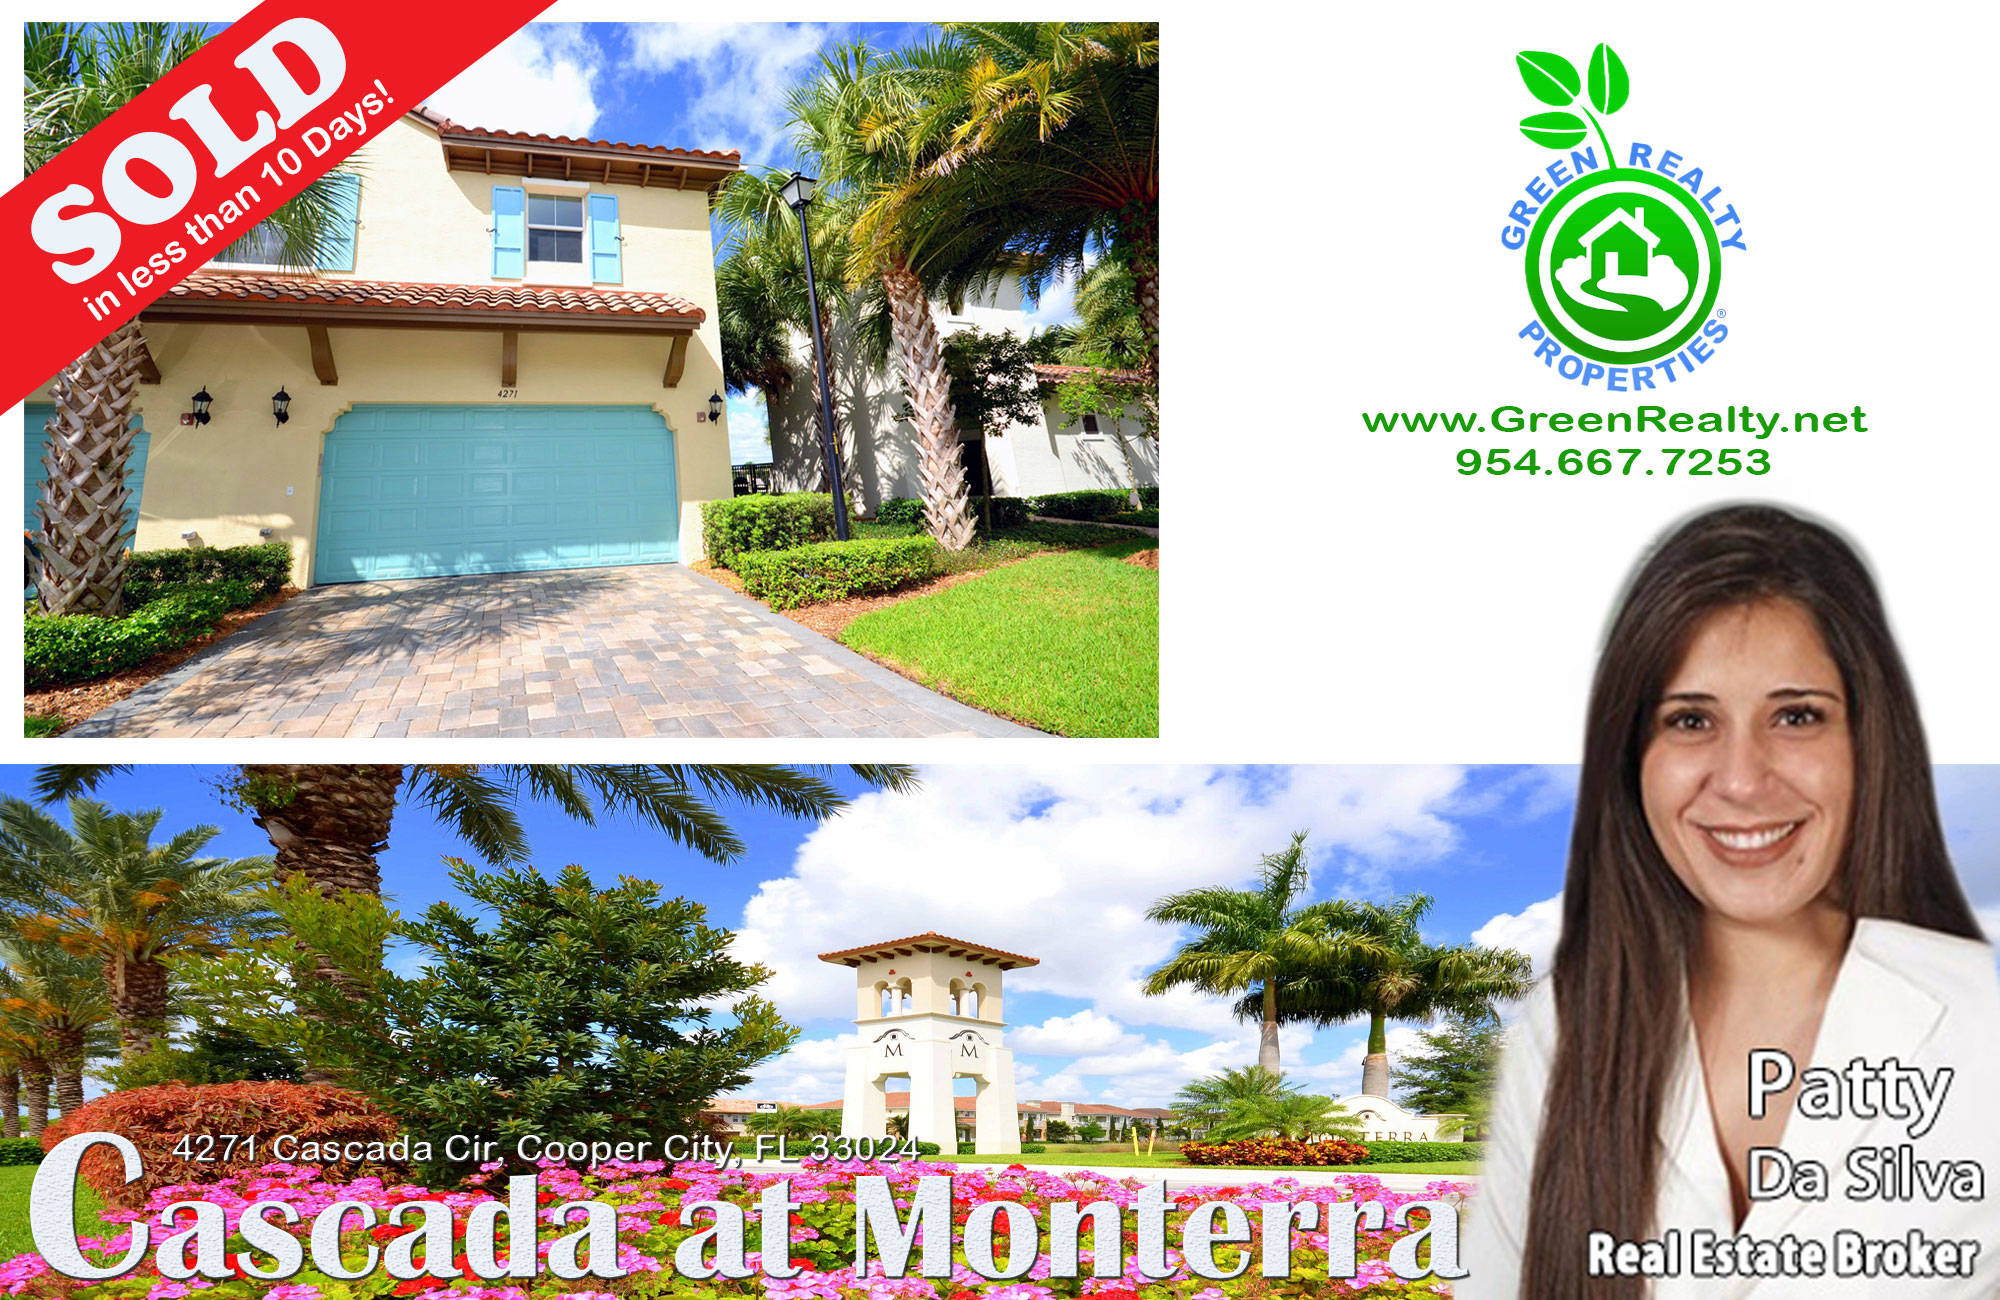 This resort like Cascada townhome in Monterra Cooper City  was sold in less than 10 days!